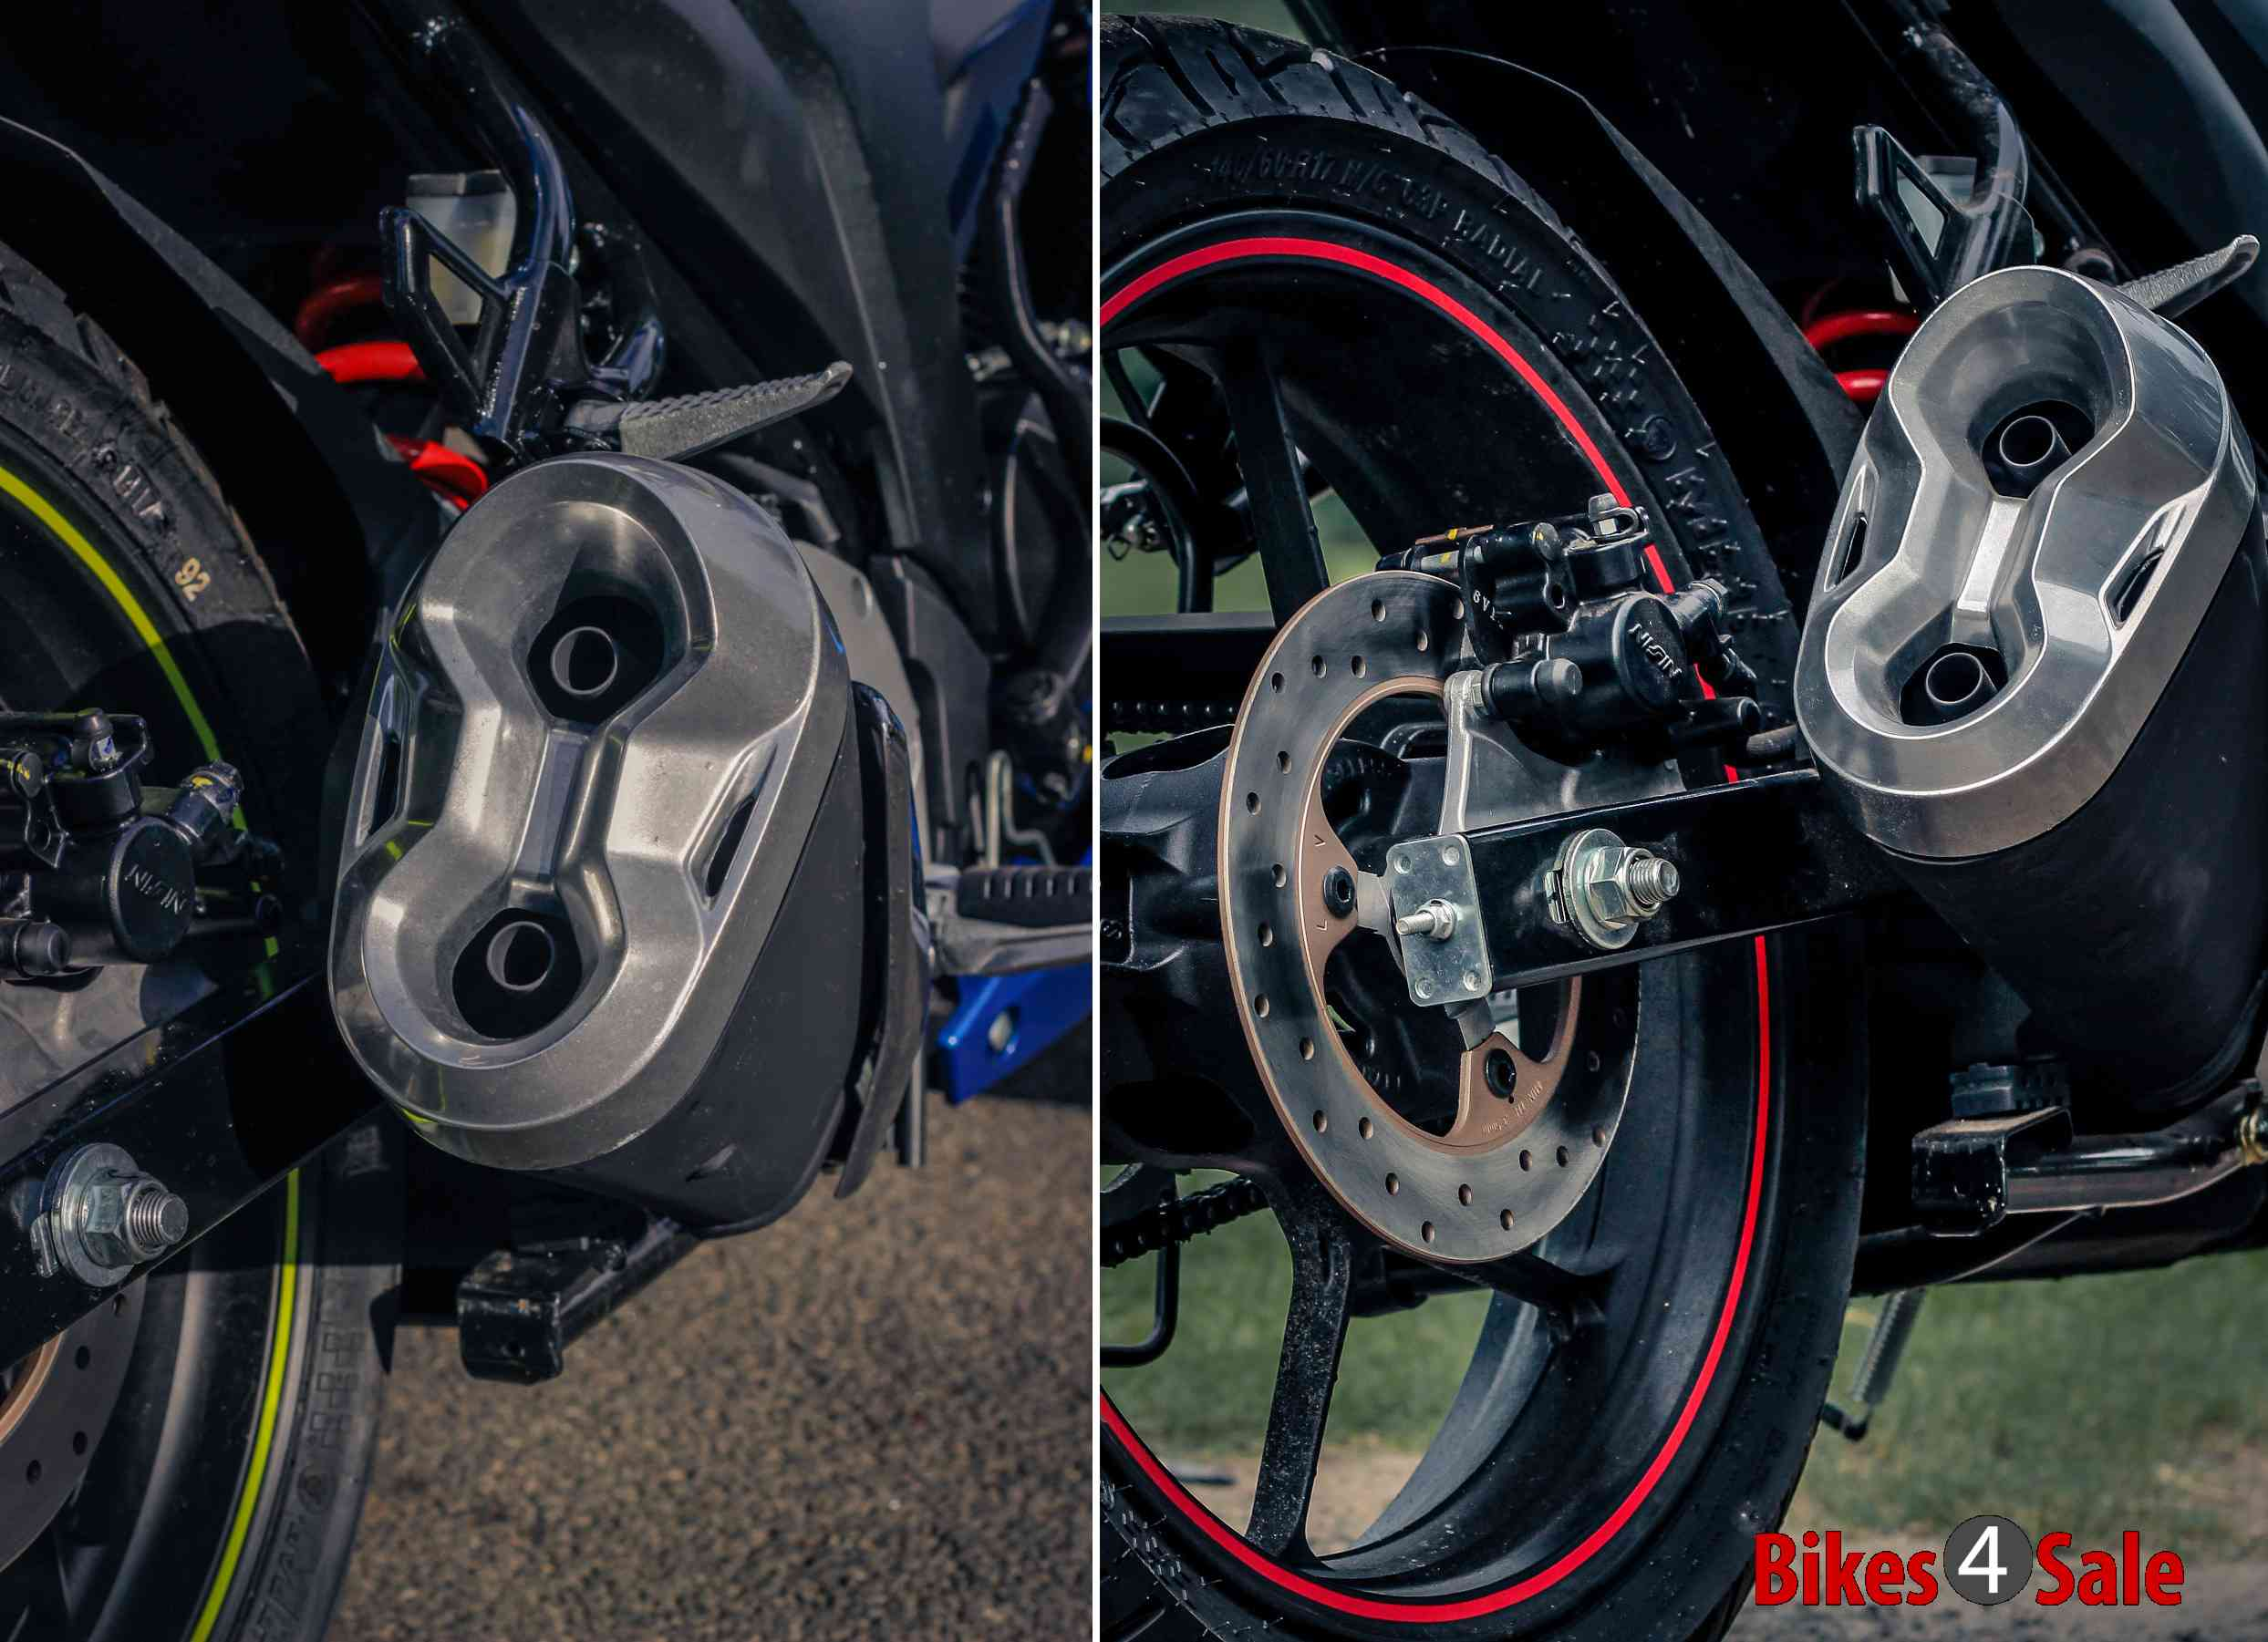 New Aluminium Exhaust Covers of Gixxer SF